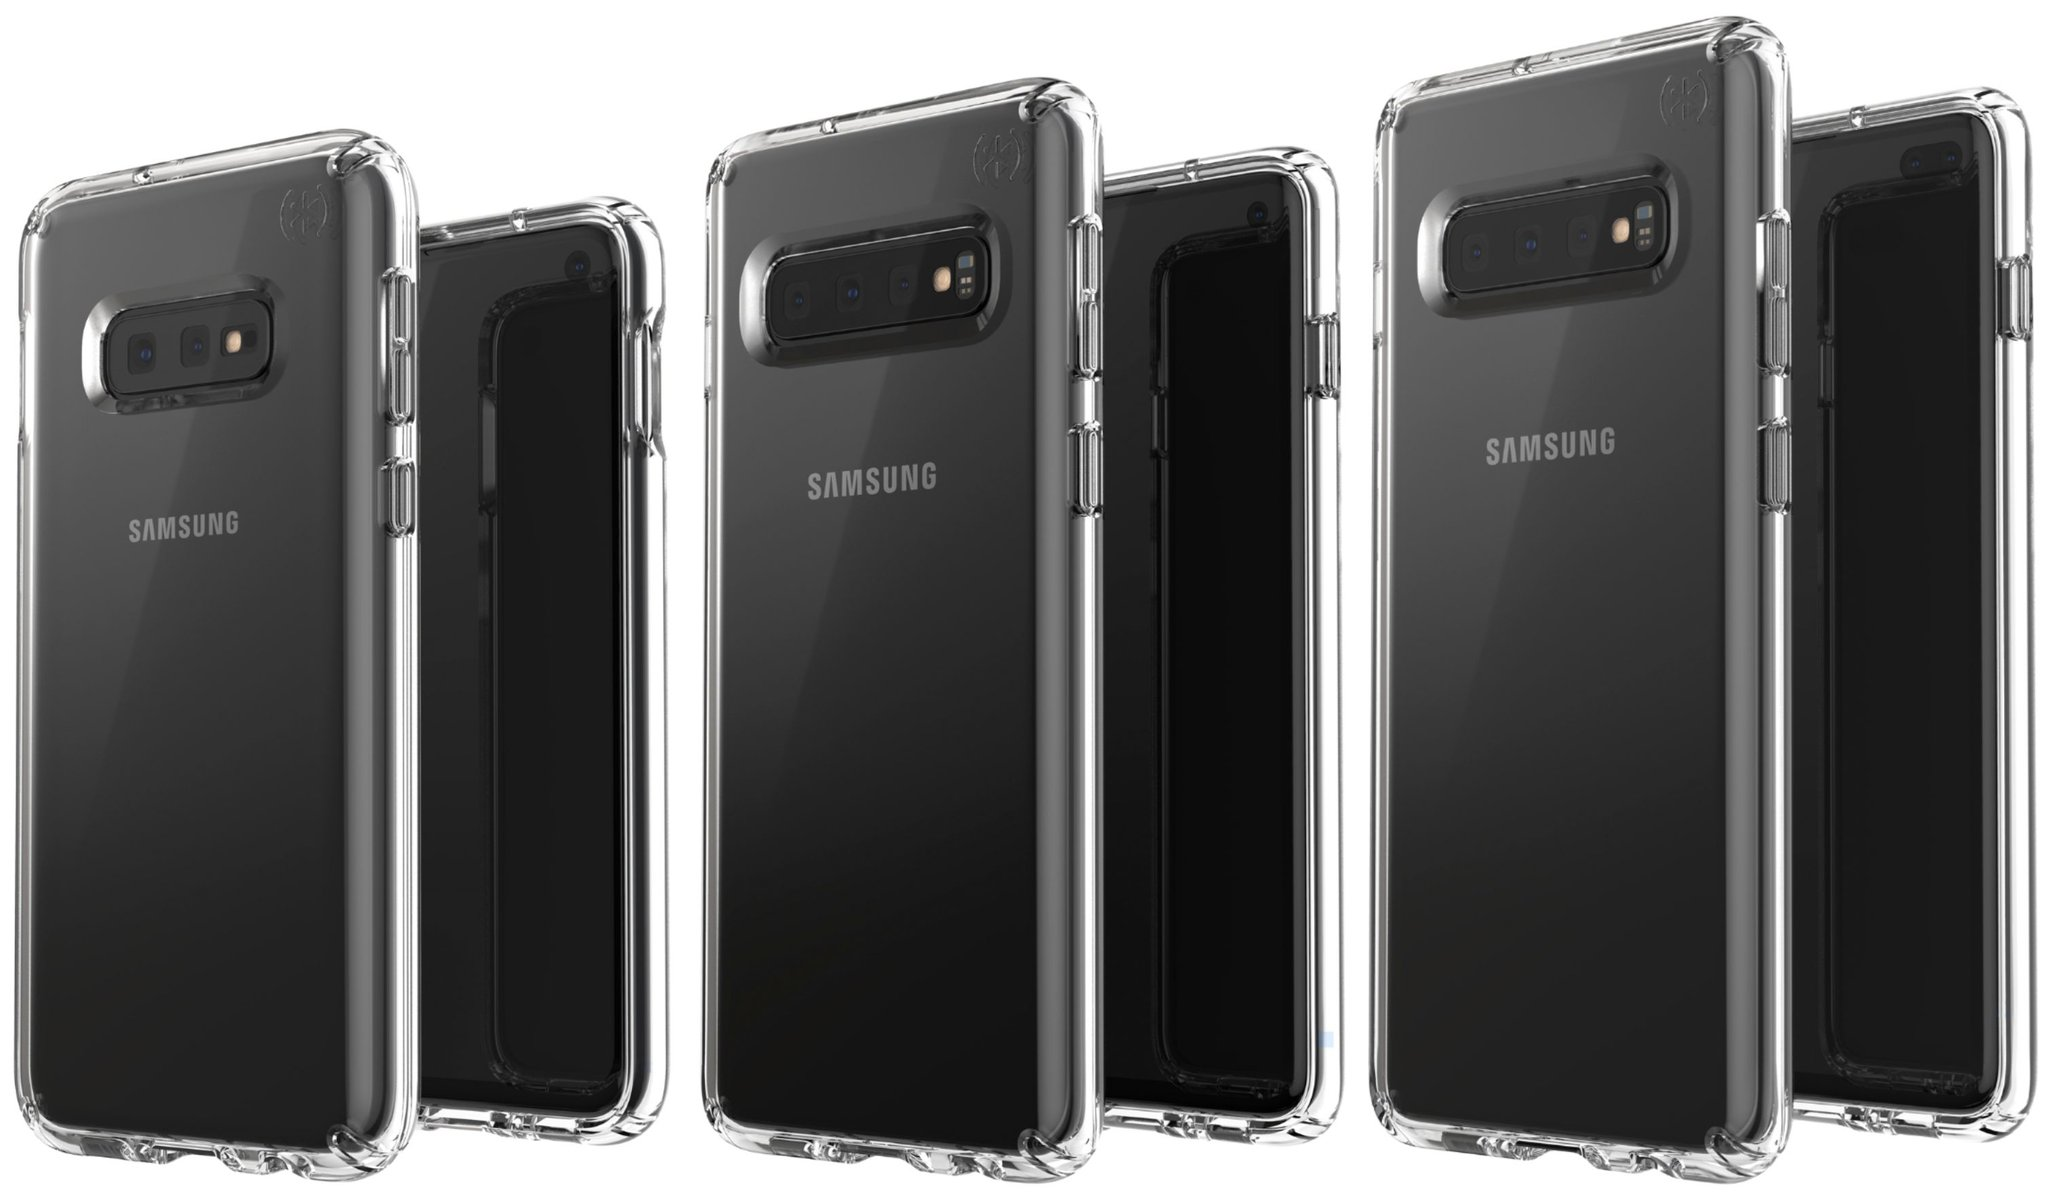 Media asset in full size related to 3dfxzone.it news item entitled as follows: Una foto leaked svela in anteprima la linea completa Galaxy S10 di Samsung | Image Name: news29167_Samsung-Galaxy-S10_1.jpg